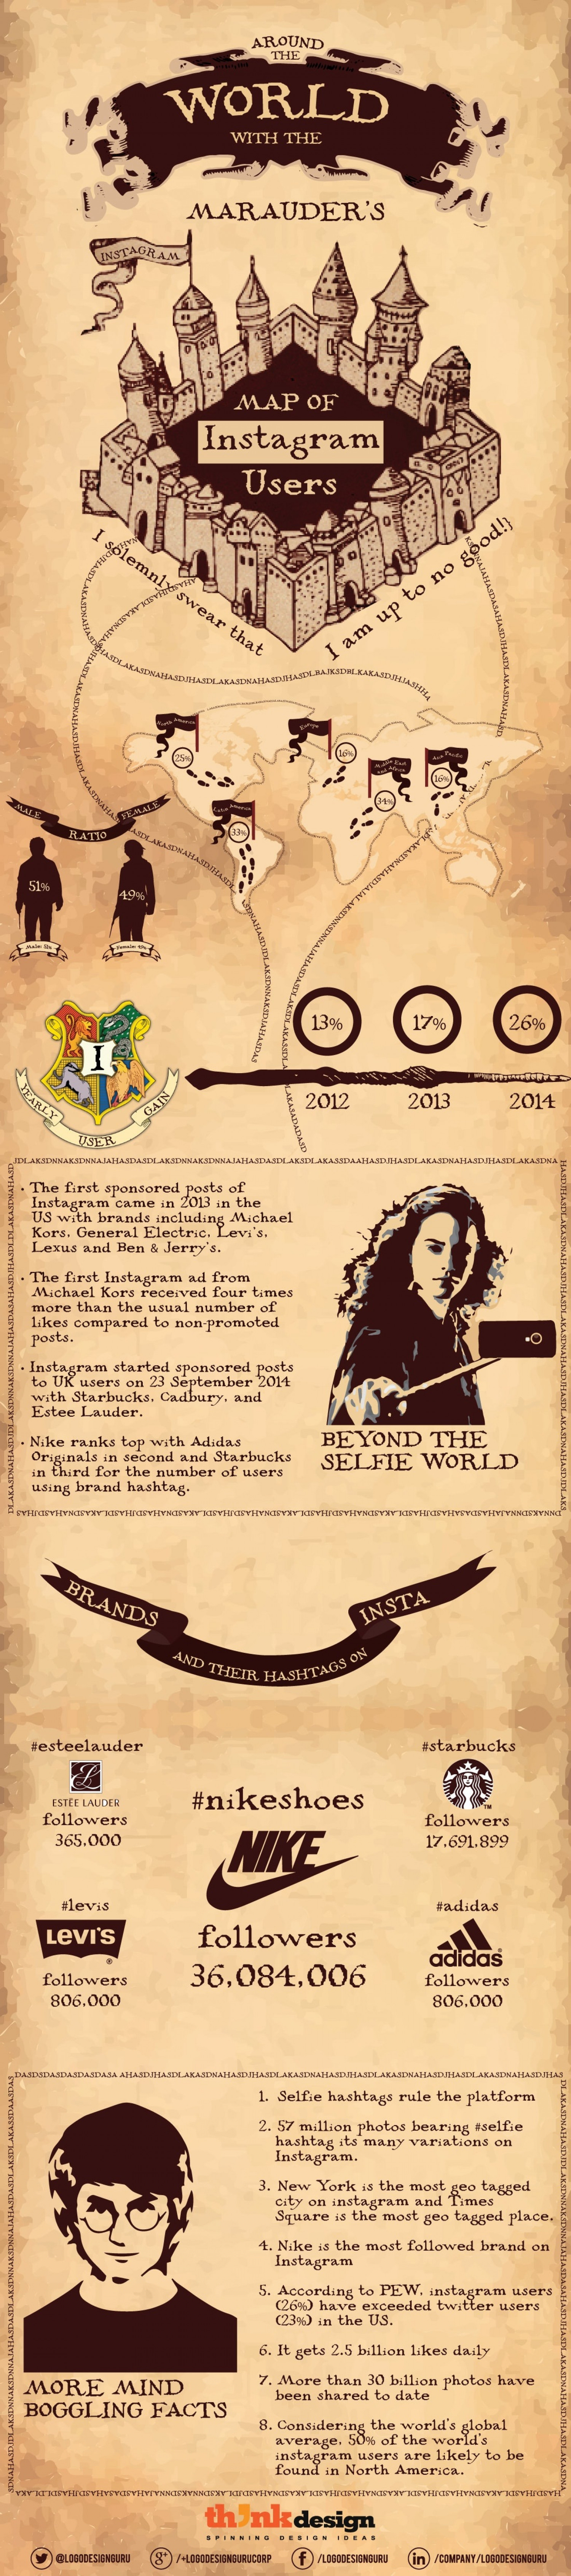 Around the World with the Marauder's Map of Instagram Users Infographic